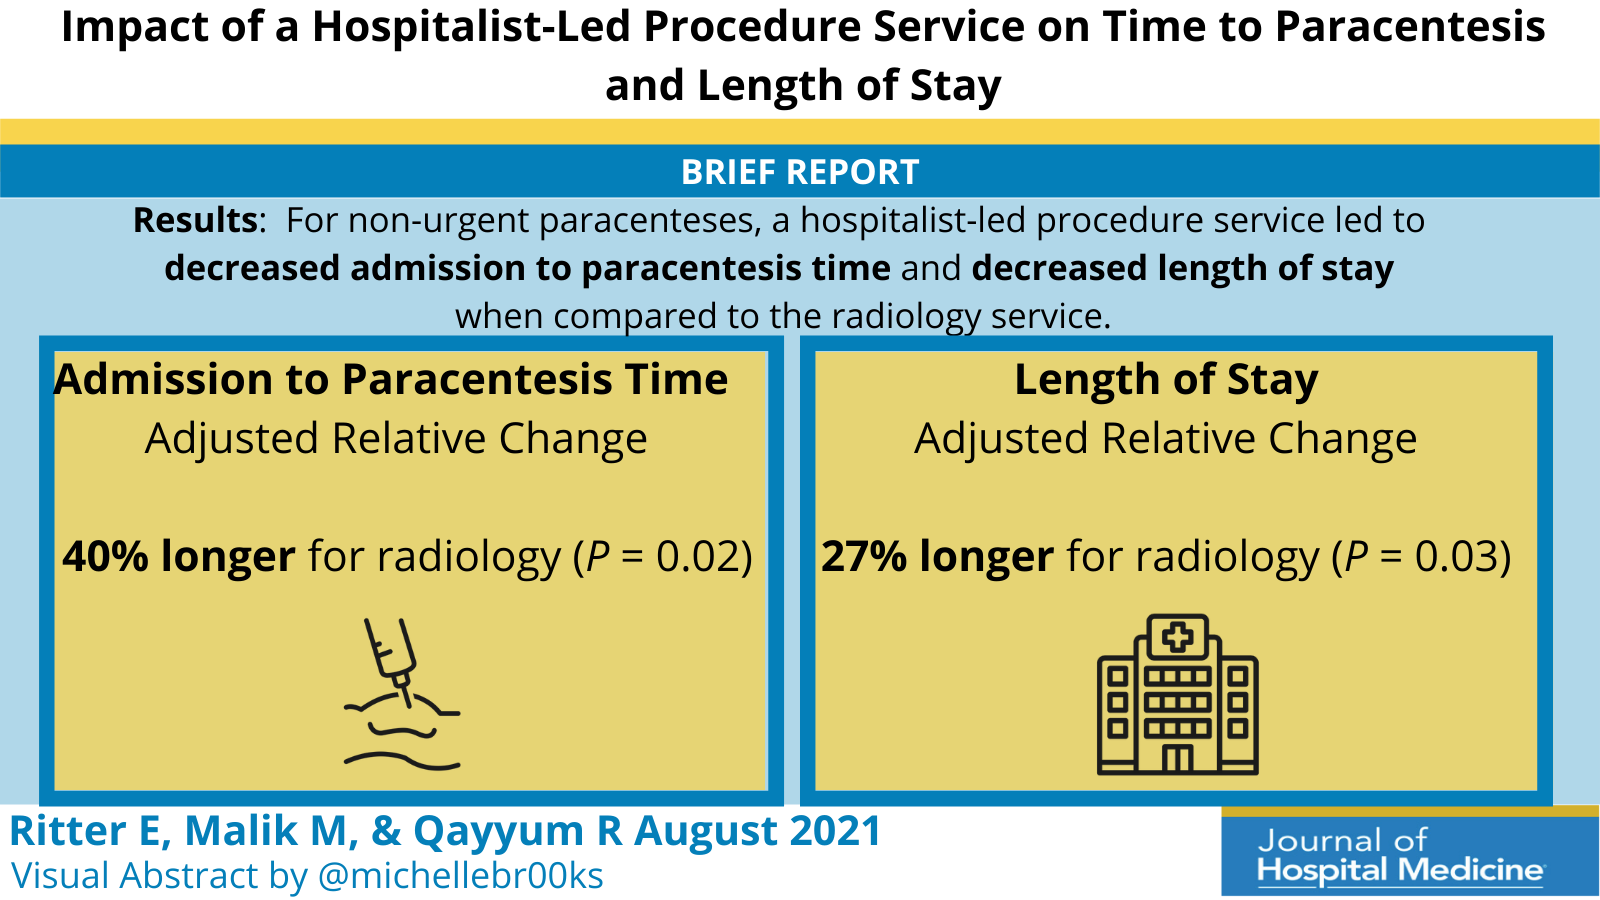 Impact of a Hospitalist-Run Procedure Service on Time to Paracentesis and Length of Stay